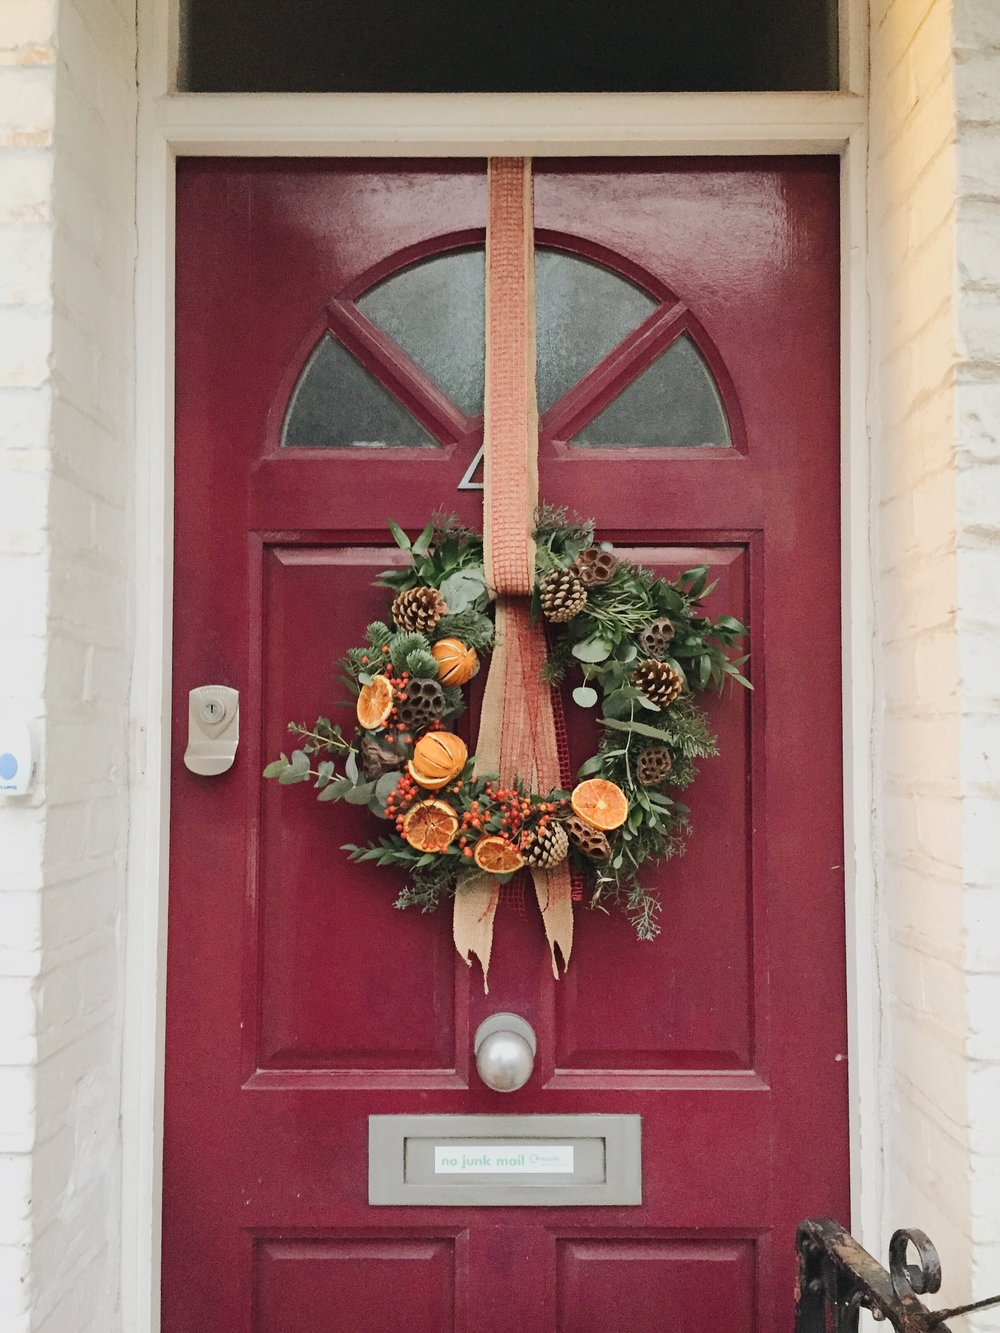 Tutorial diy christmas dcor for your front door martina natali tutorial diy christmas dcor for your front door solutioingenieria Choice Image